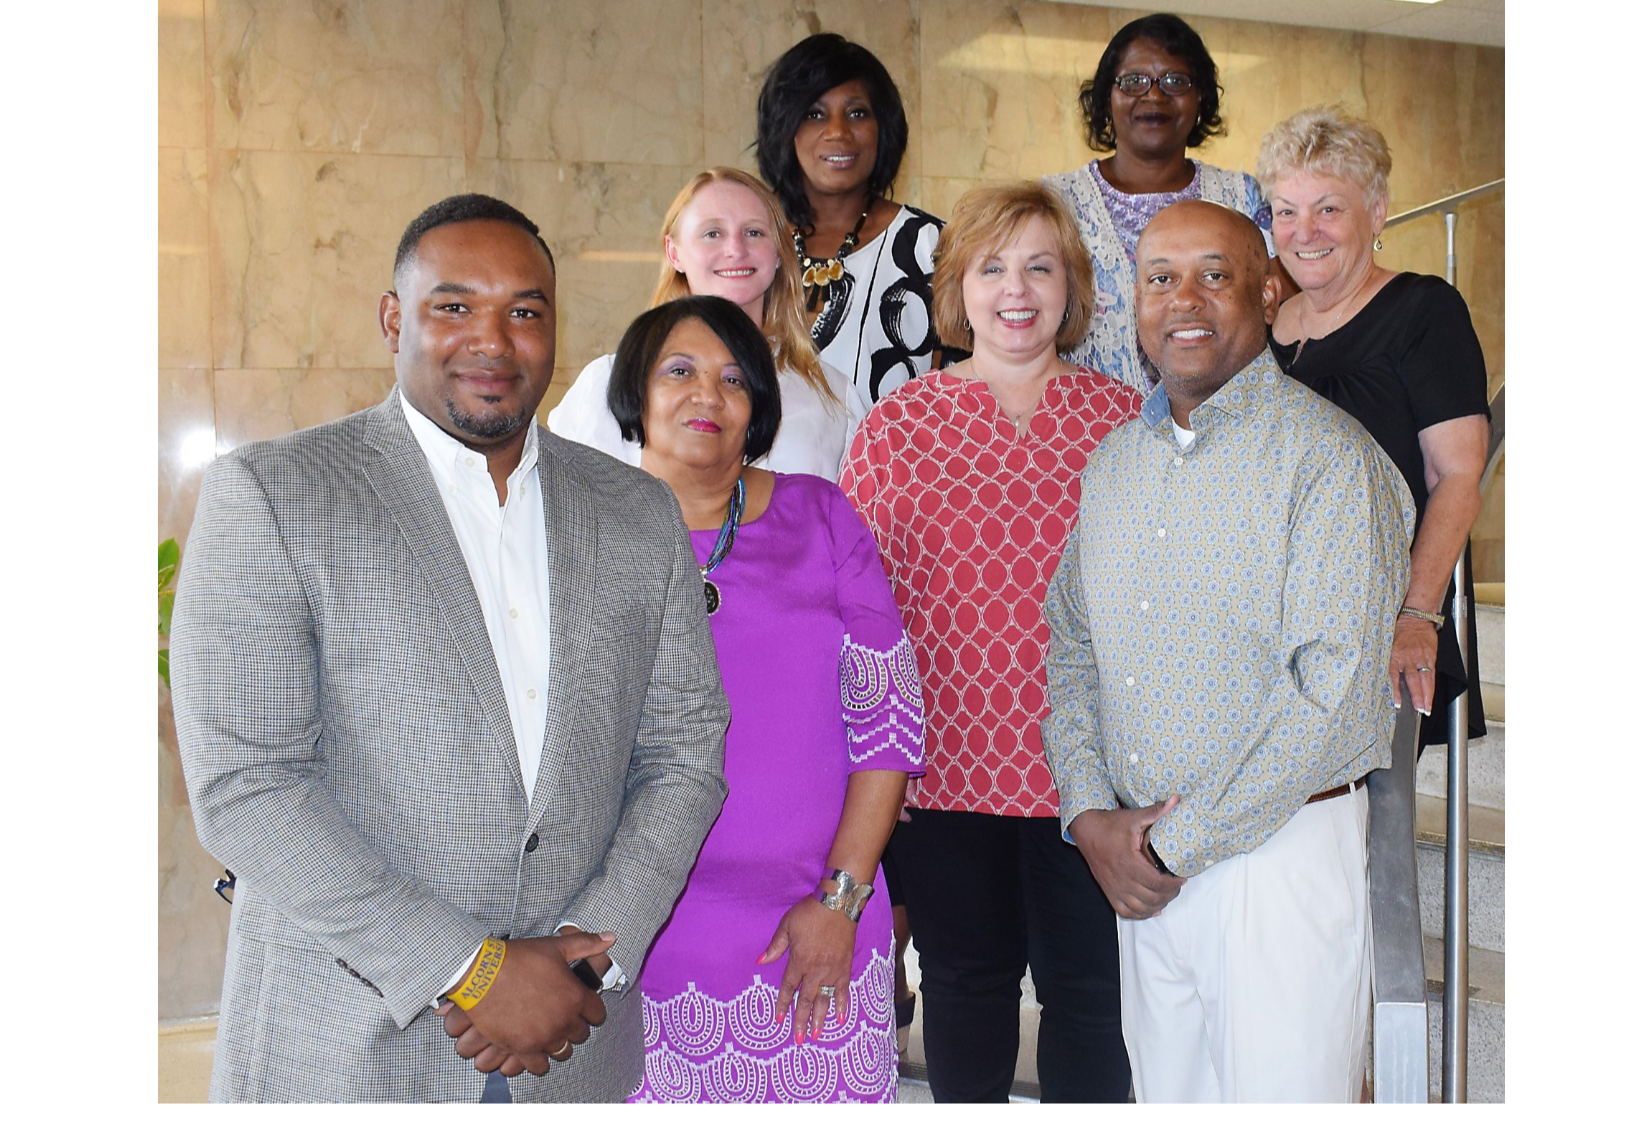 Members of the Blytheville School District's Board of Education are (front, from left) Desmond Hammett, Barbara Wells, Erin Carrington, Tracey Ritchey, Billy Fair, (in back, from left) Michelle Sims, Henrietta Watt and Tobey Johnson. Carrington was elected president of the board, Wells is vice president and Sims secretary.